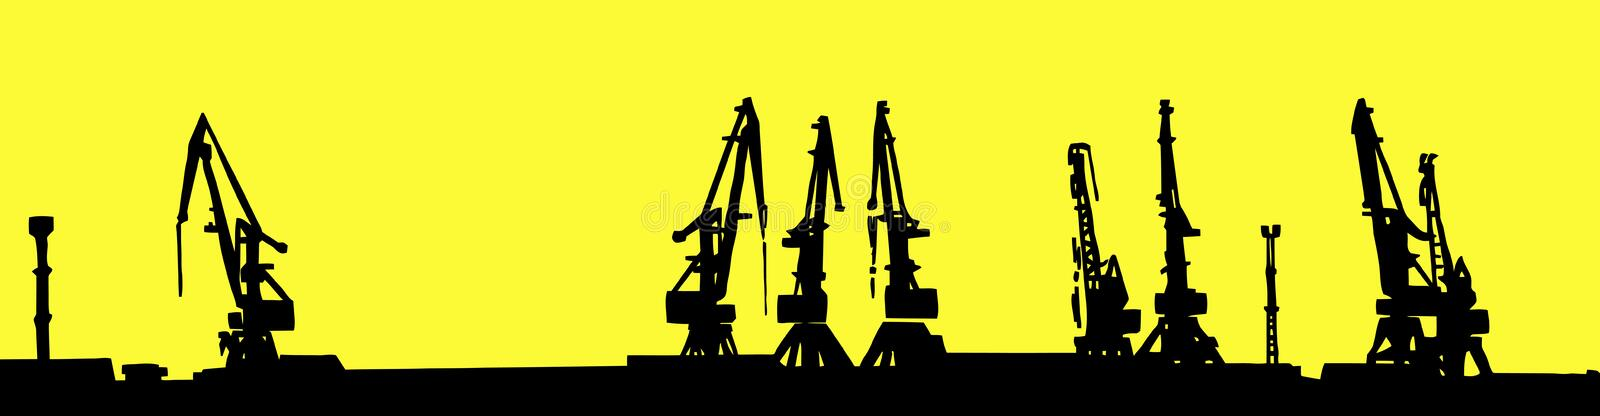 Silhouette shipyard. Isolated on yellow background royalty free illustration